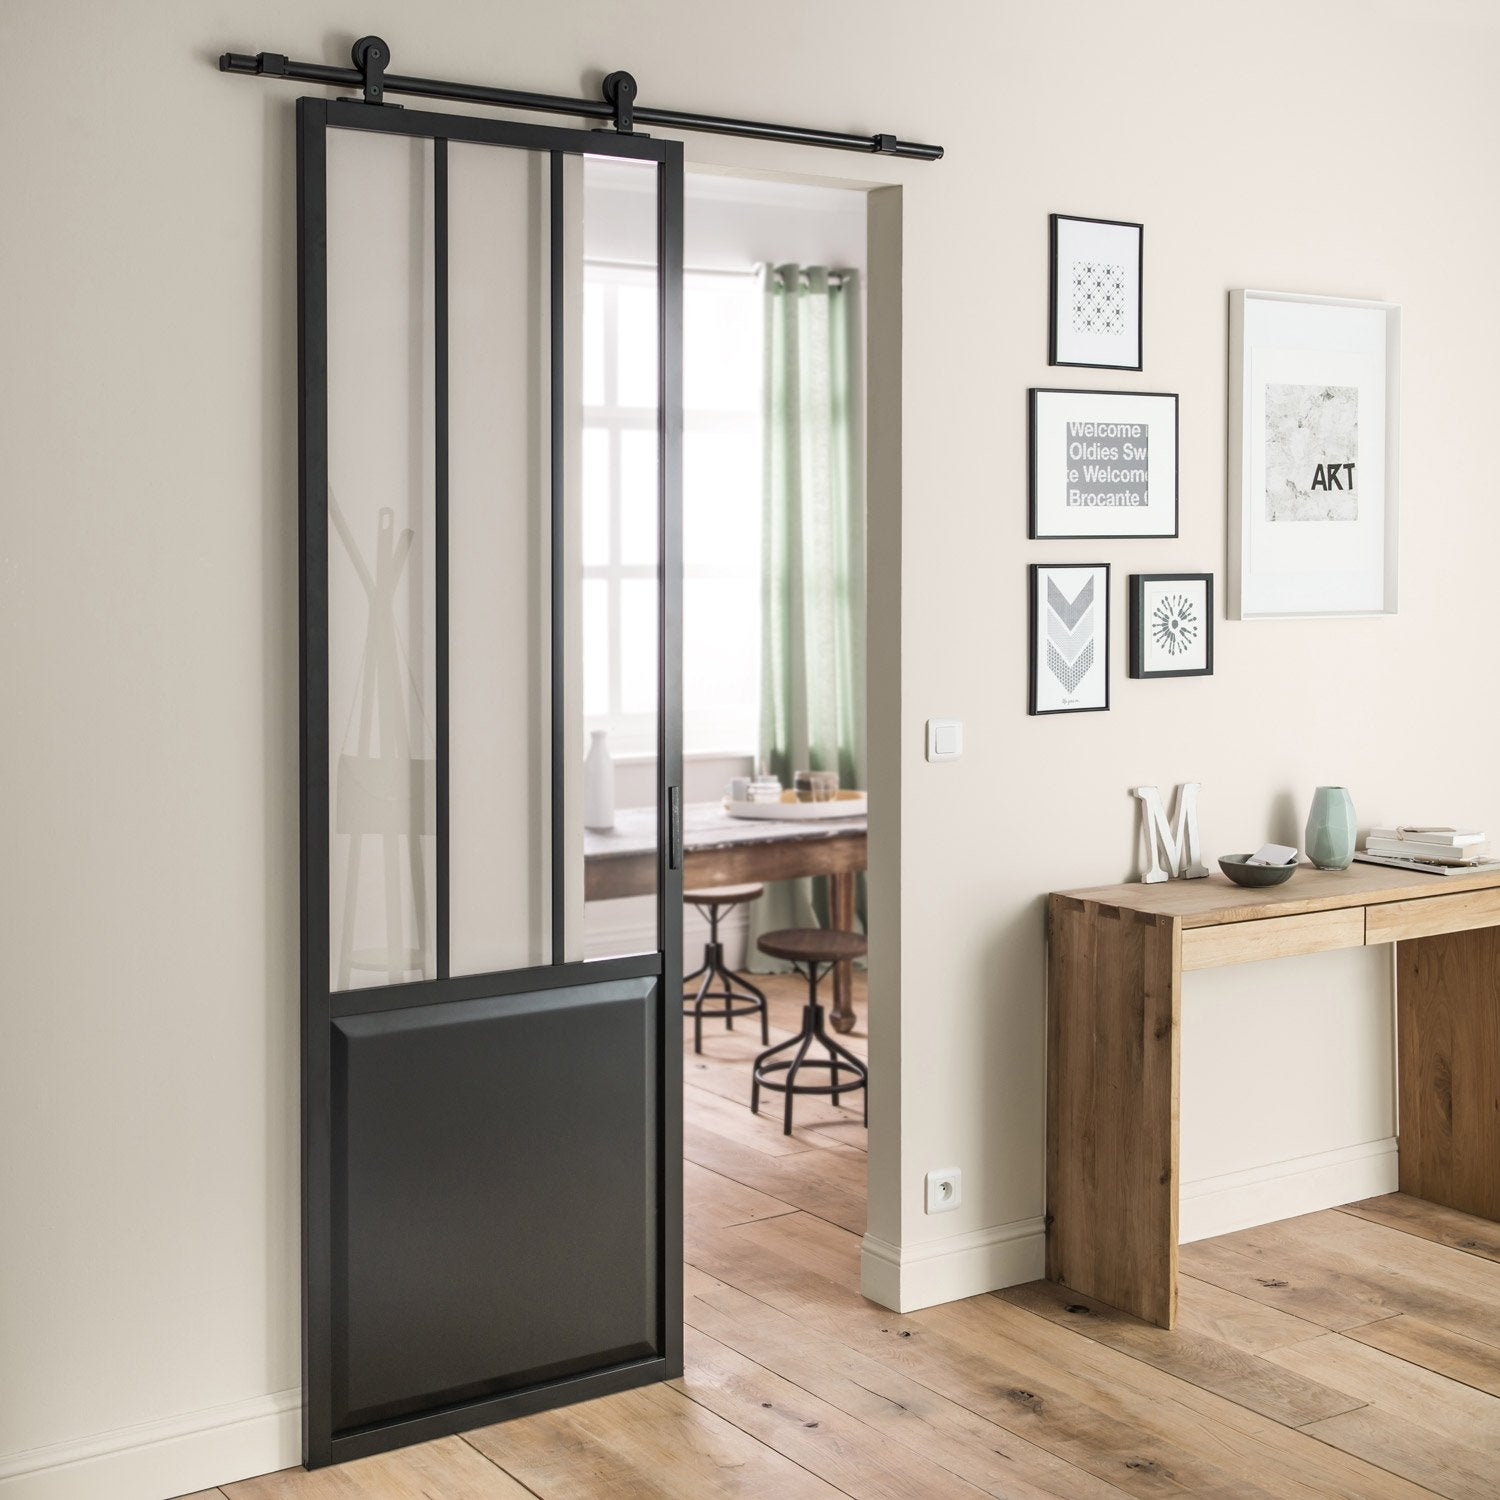 Ensemble porte coulissante atelier mdf rev tu avec le rail for Leroy merlin portes coulissantes